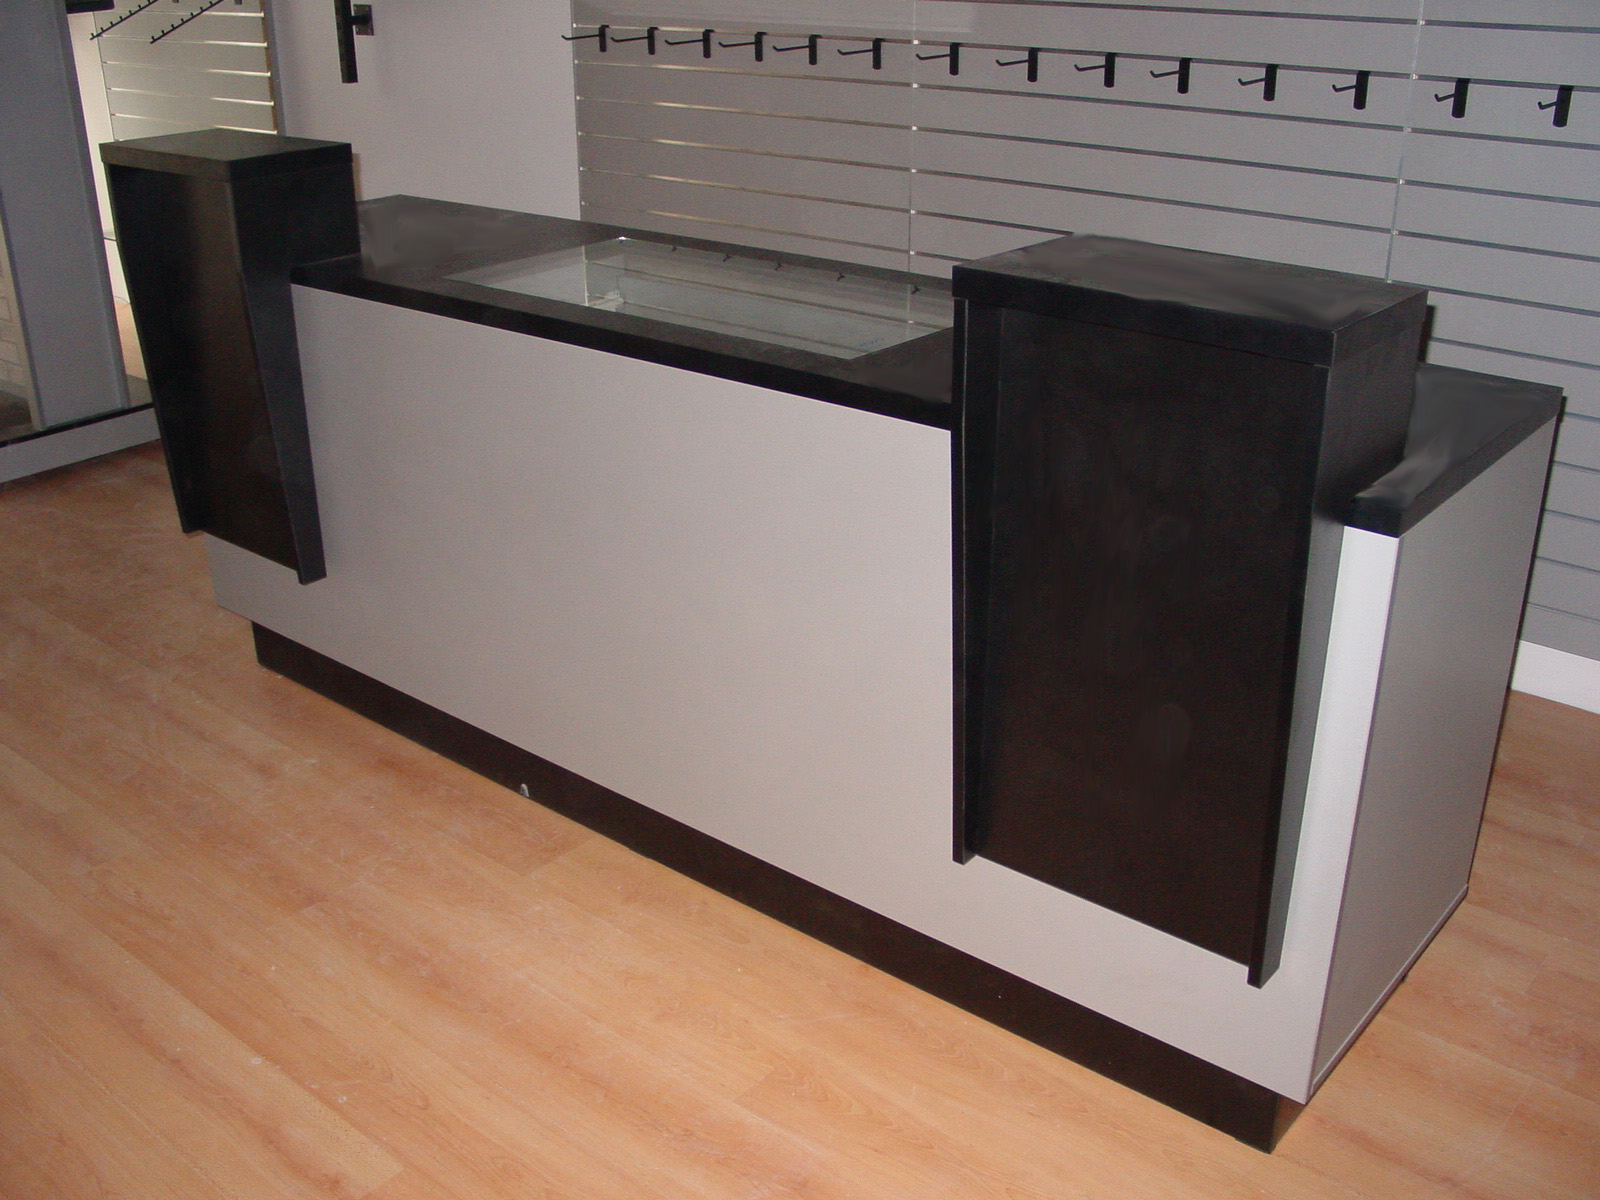 Shop Countertops : Shop counter TP575 Shop counters III